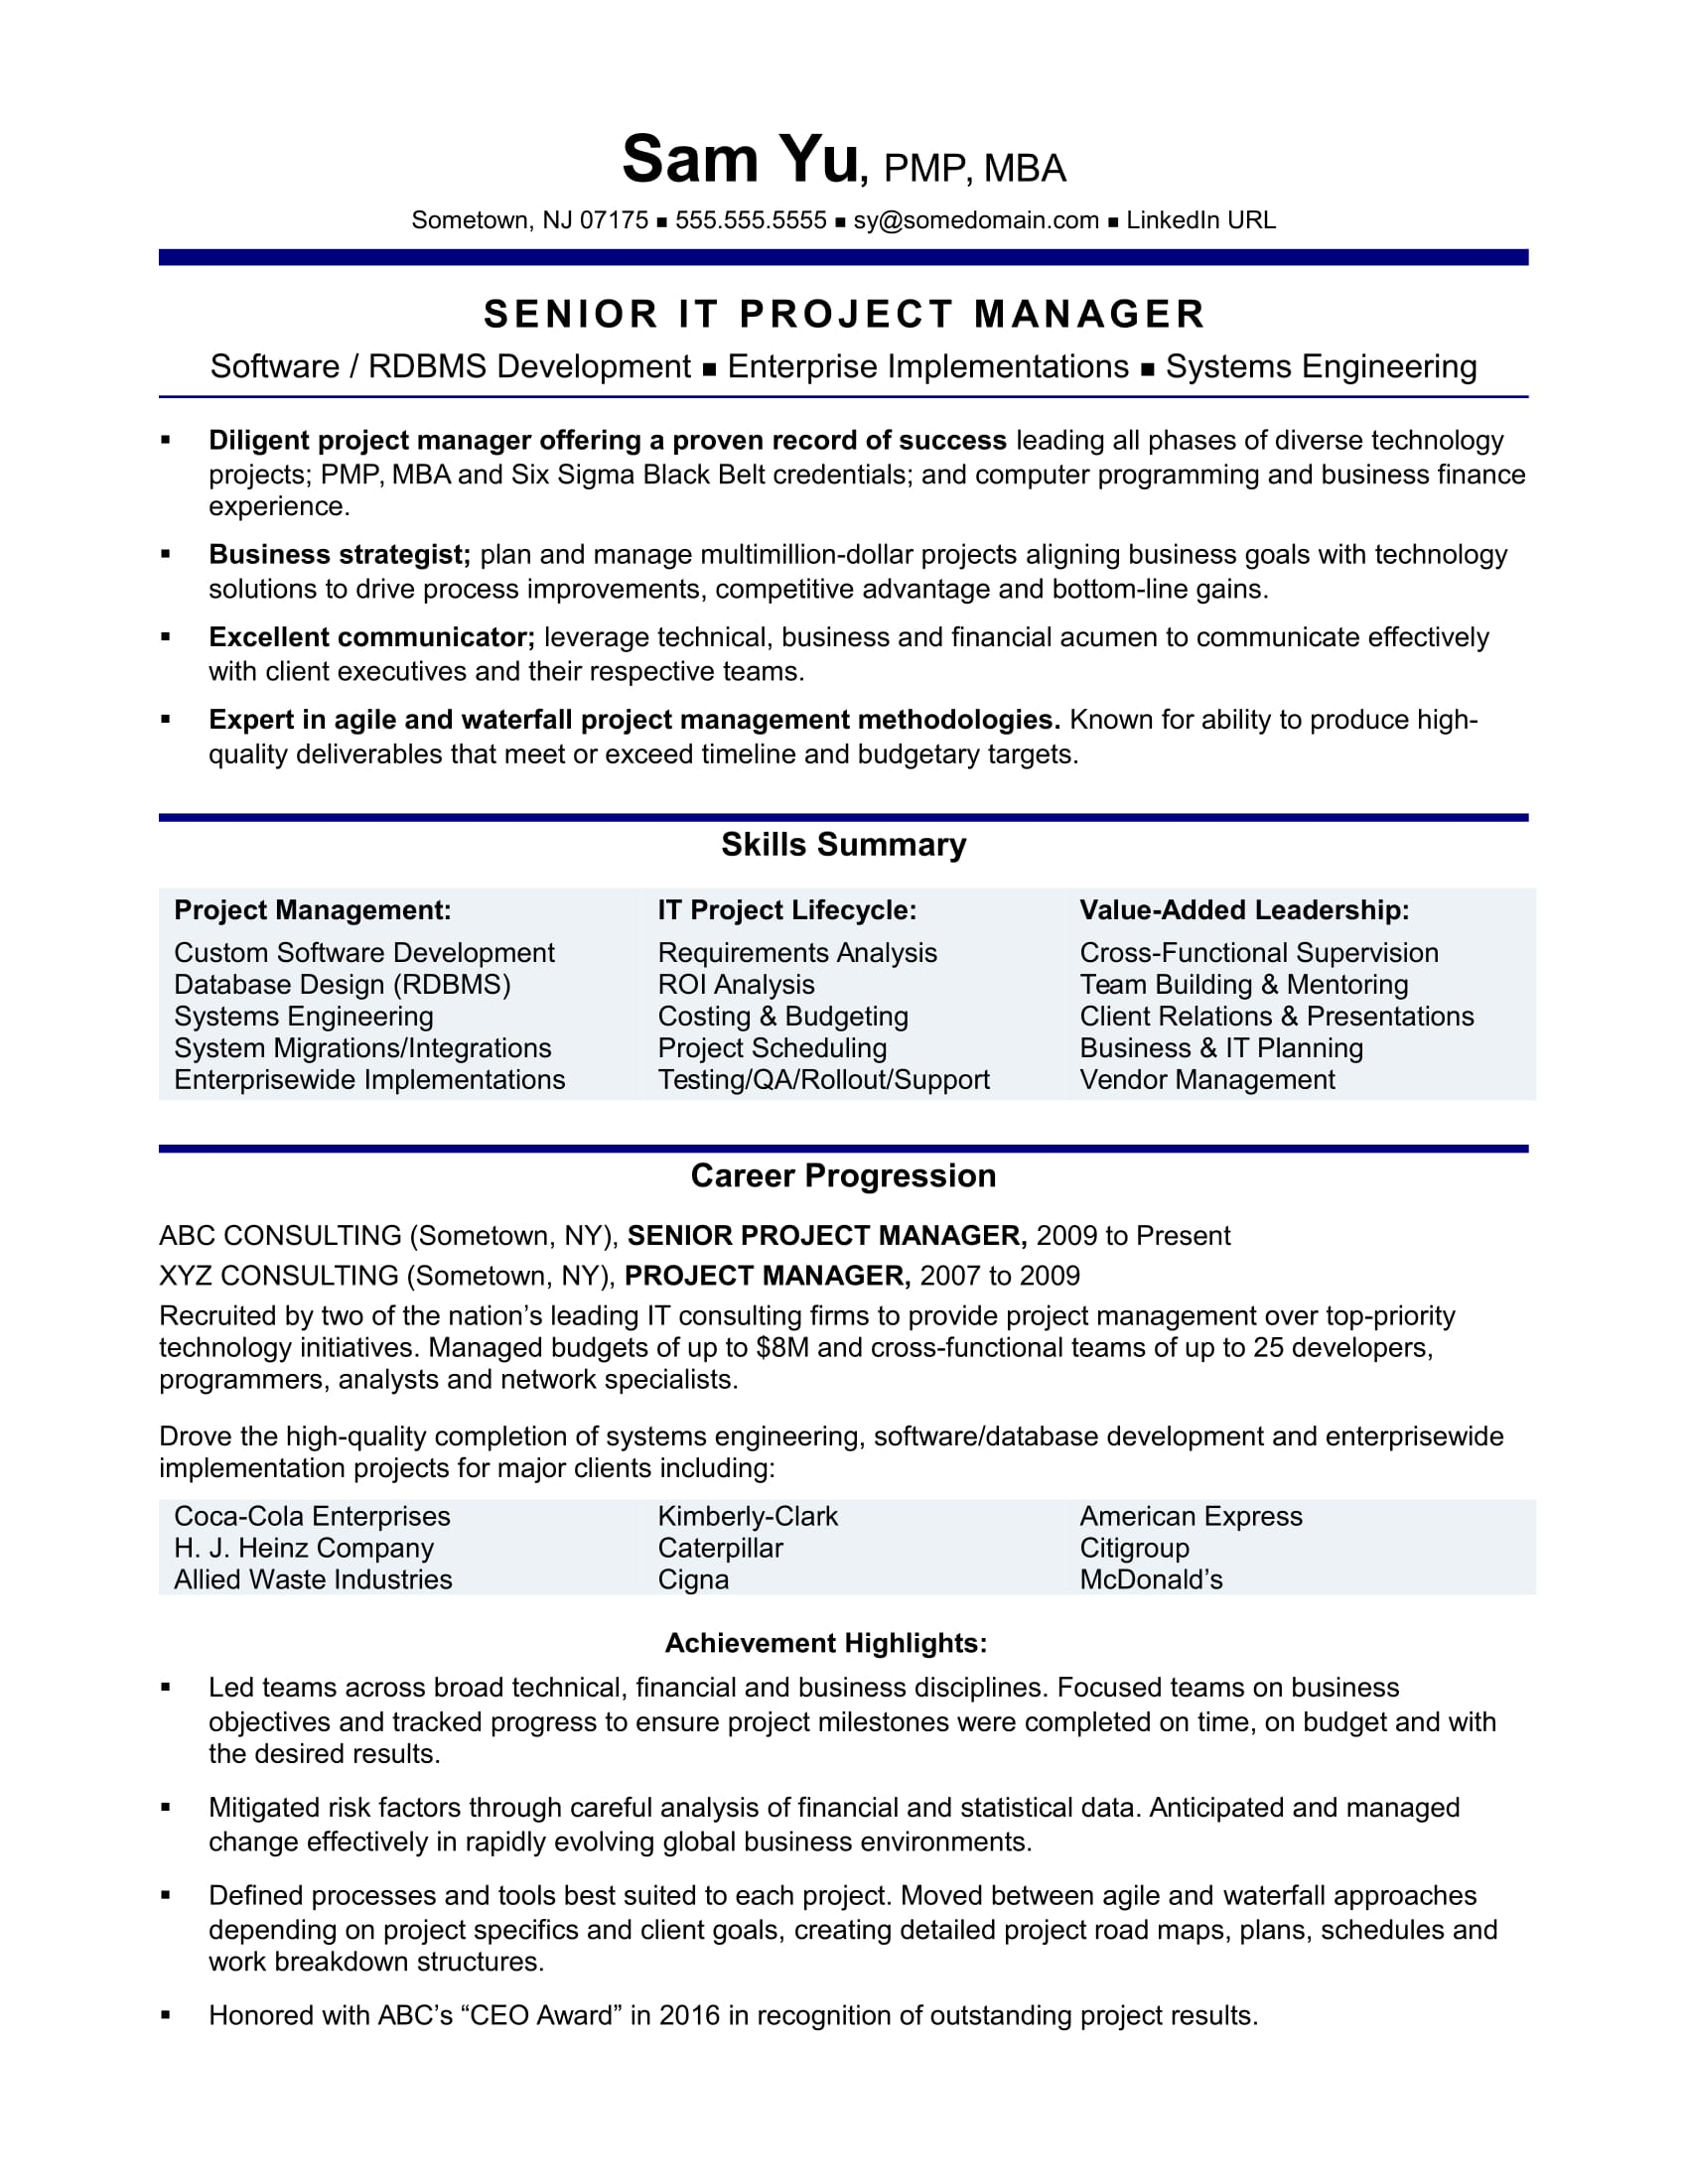 Example Resumes Experienced It Project Manager Resume Sample Monster